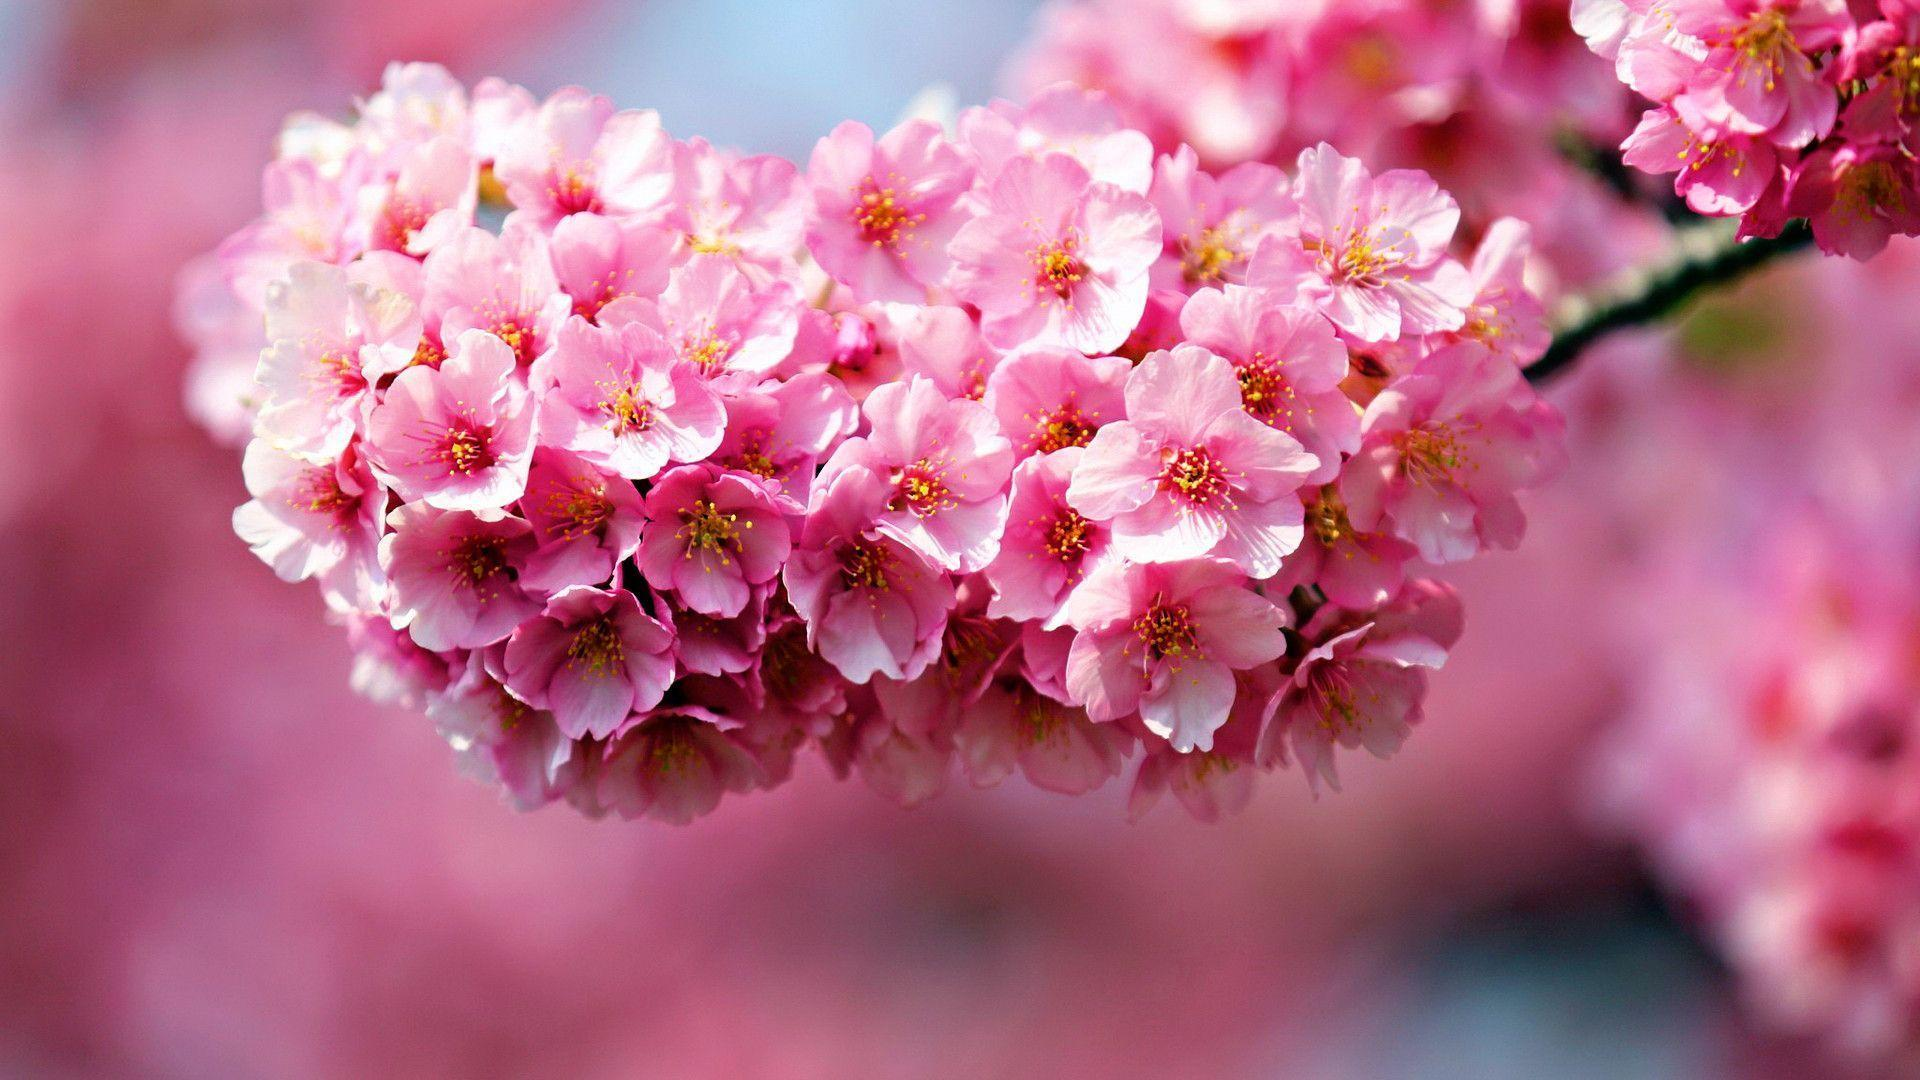 Flower Image Wallpapers